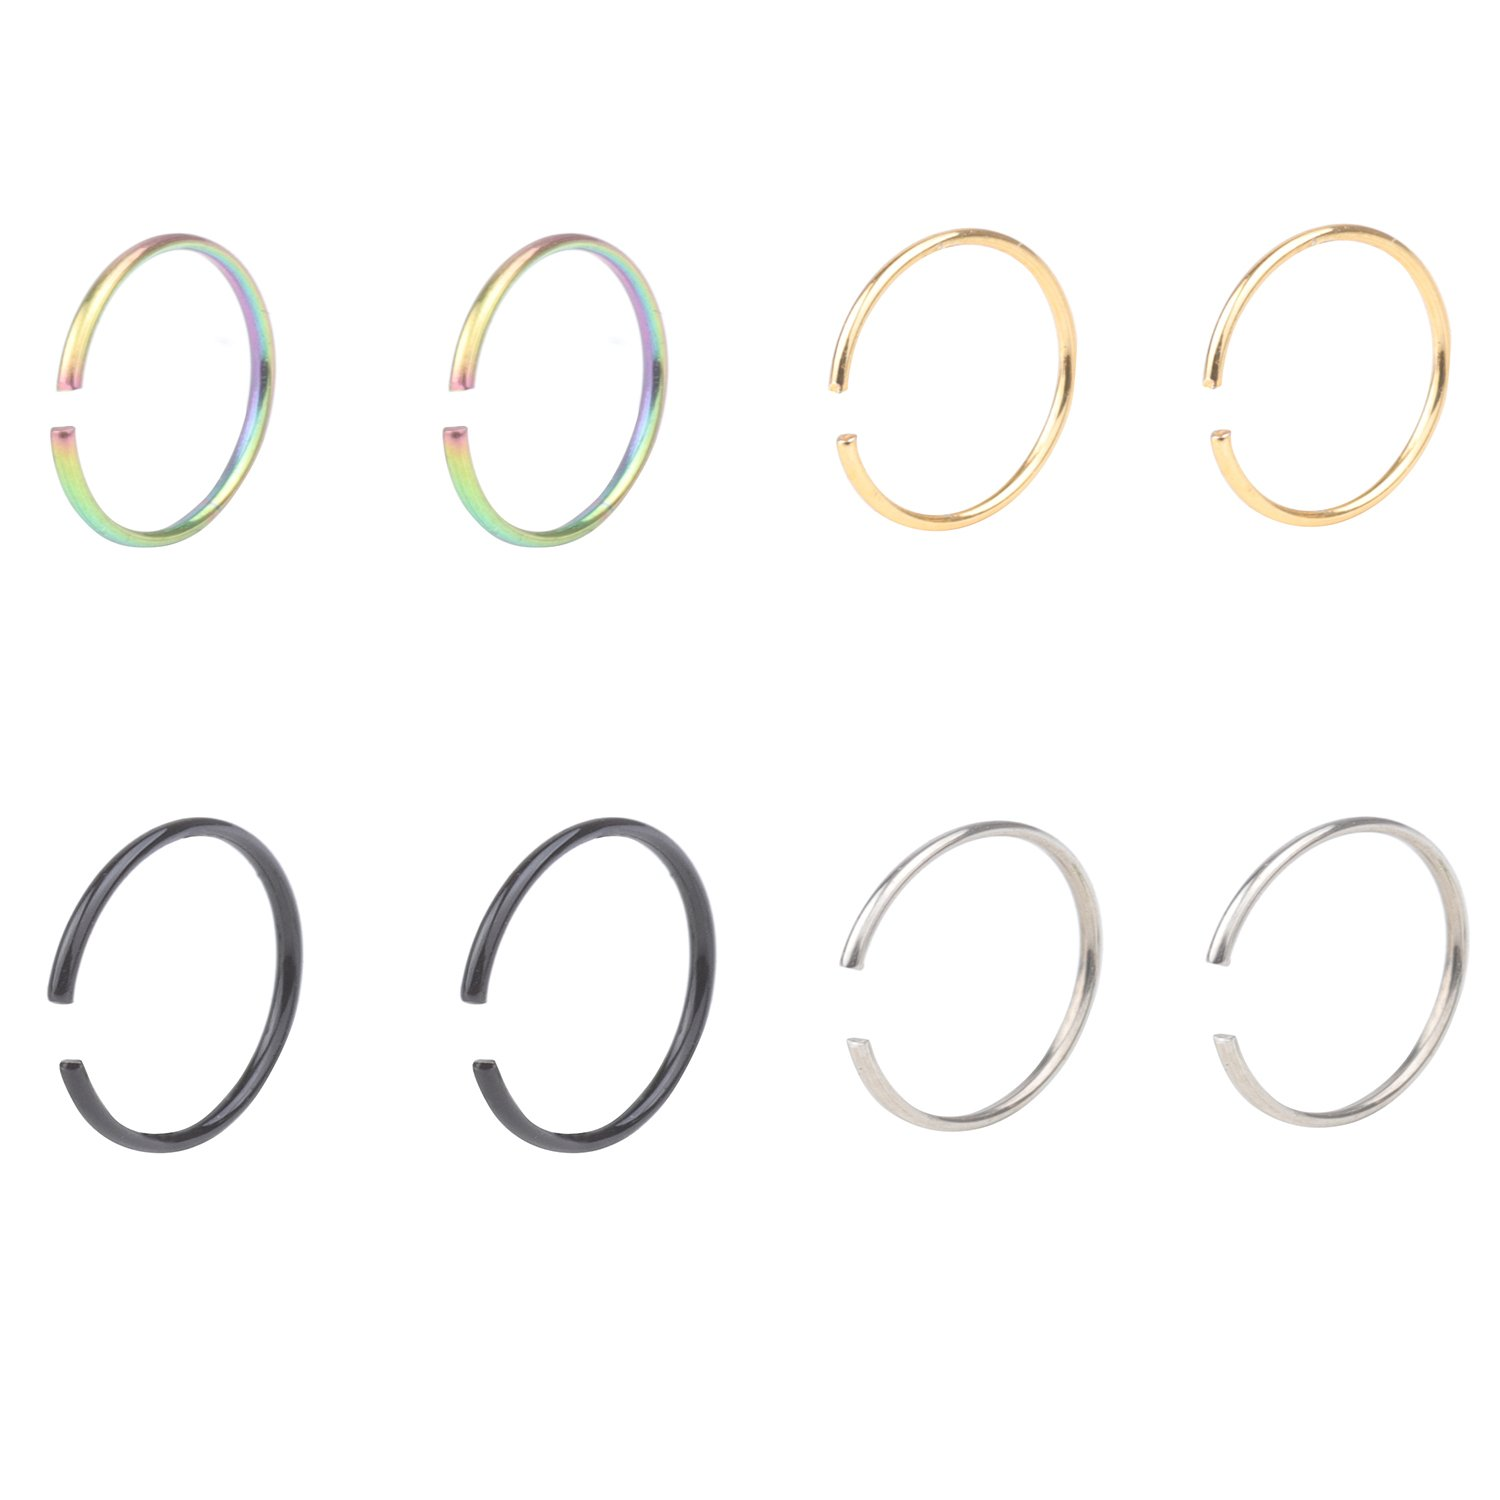 DRS 2-8pcs 22G Stainless Steel Non-Piercing Fake Clip on Closure Earrings Round Helix Cartilage Tragus Nose Lip Ear Hoop 8mm